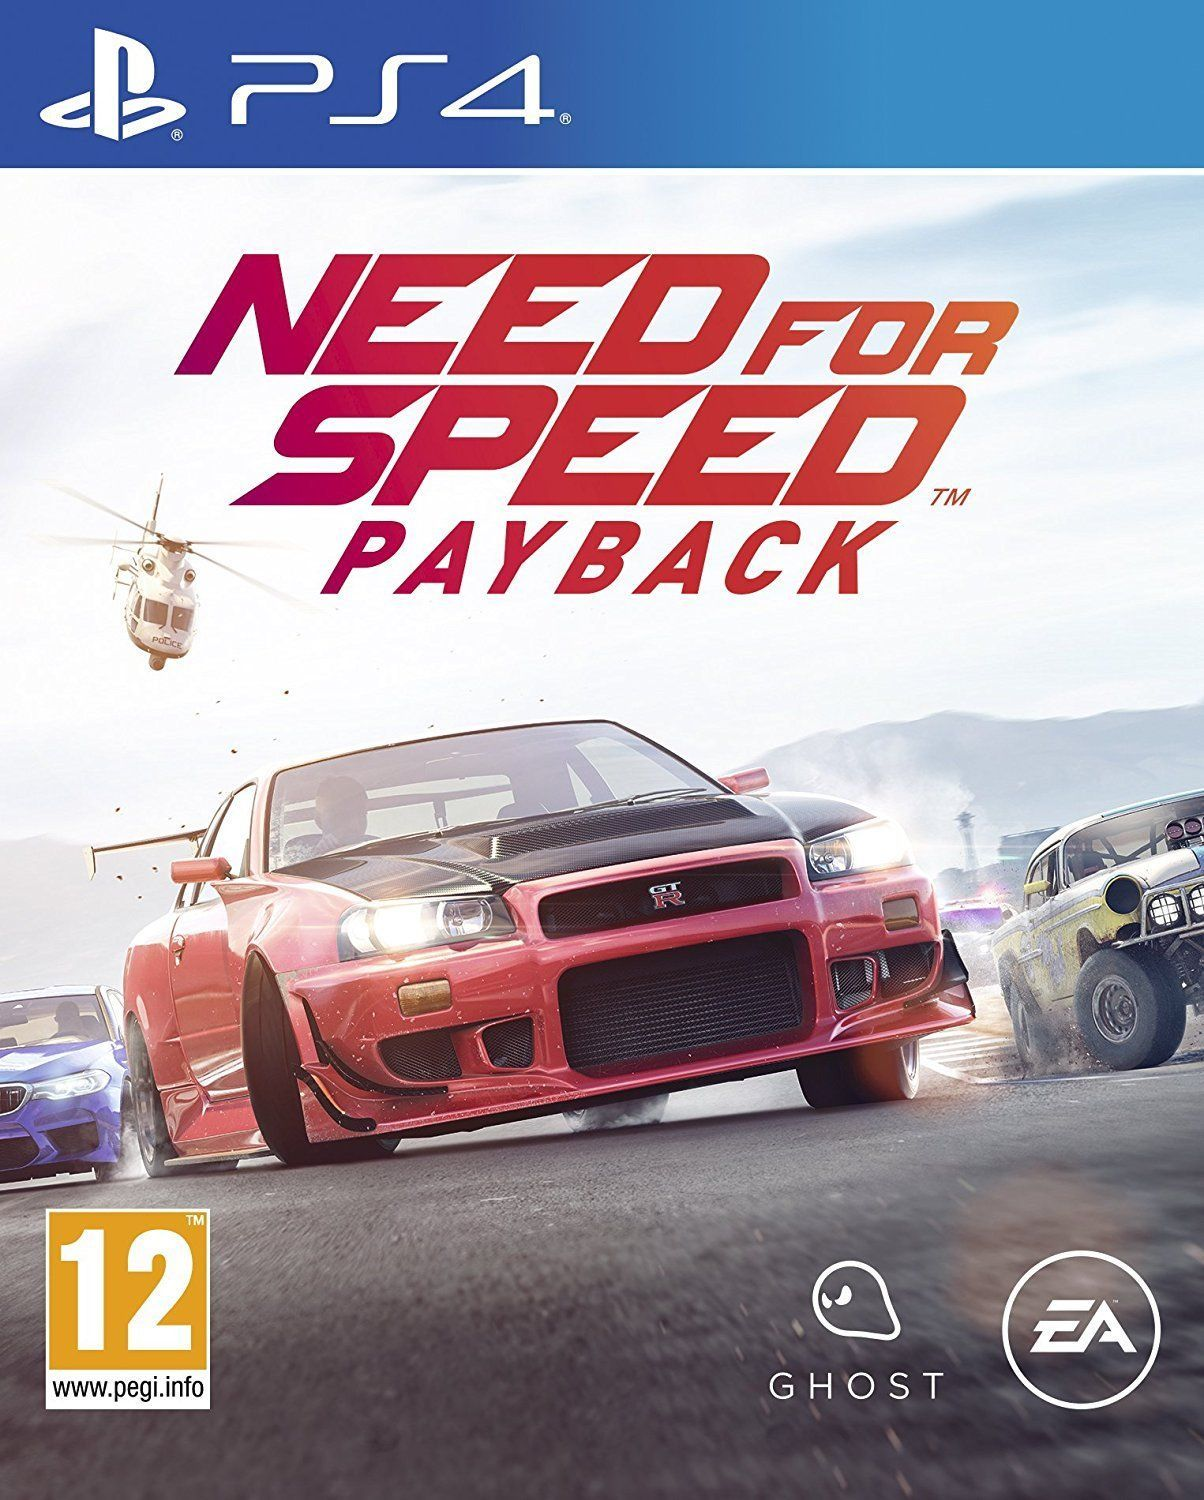 Need For Speed Payback Toda La Informacion Ps4 Pc Xbox One Vandal